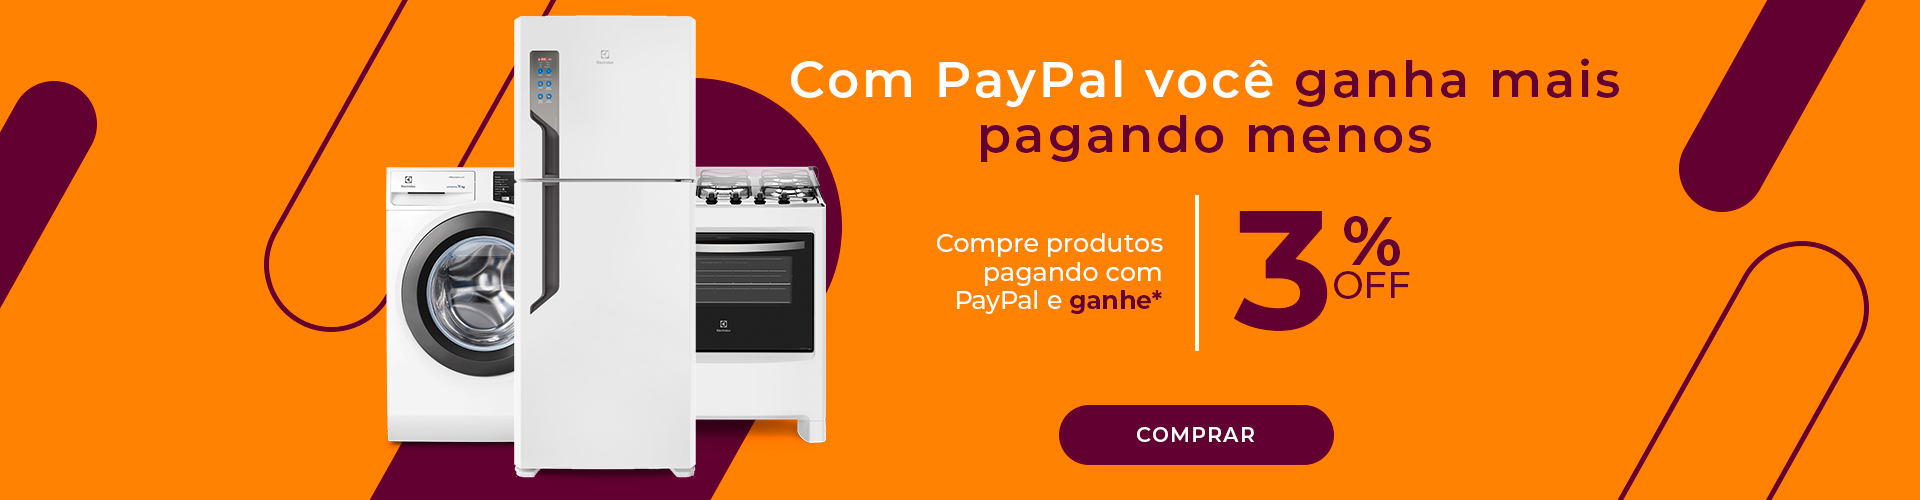 paypal 3 off